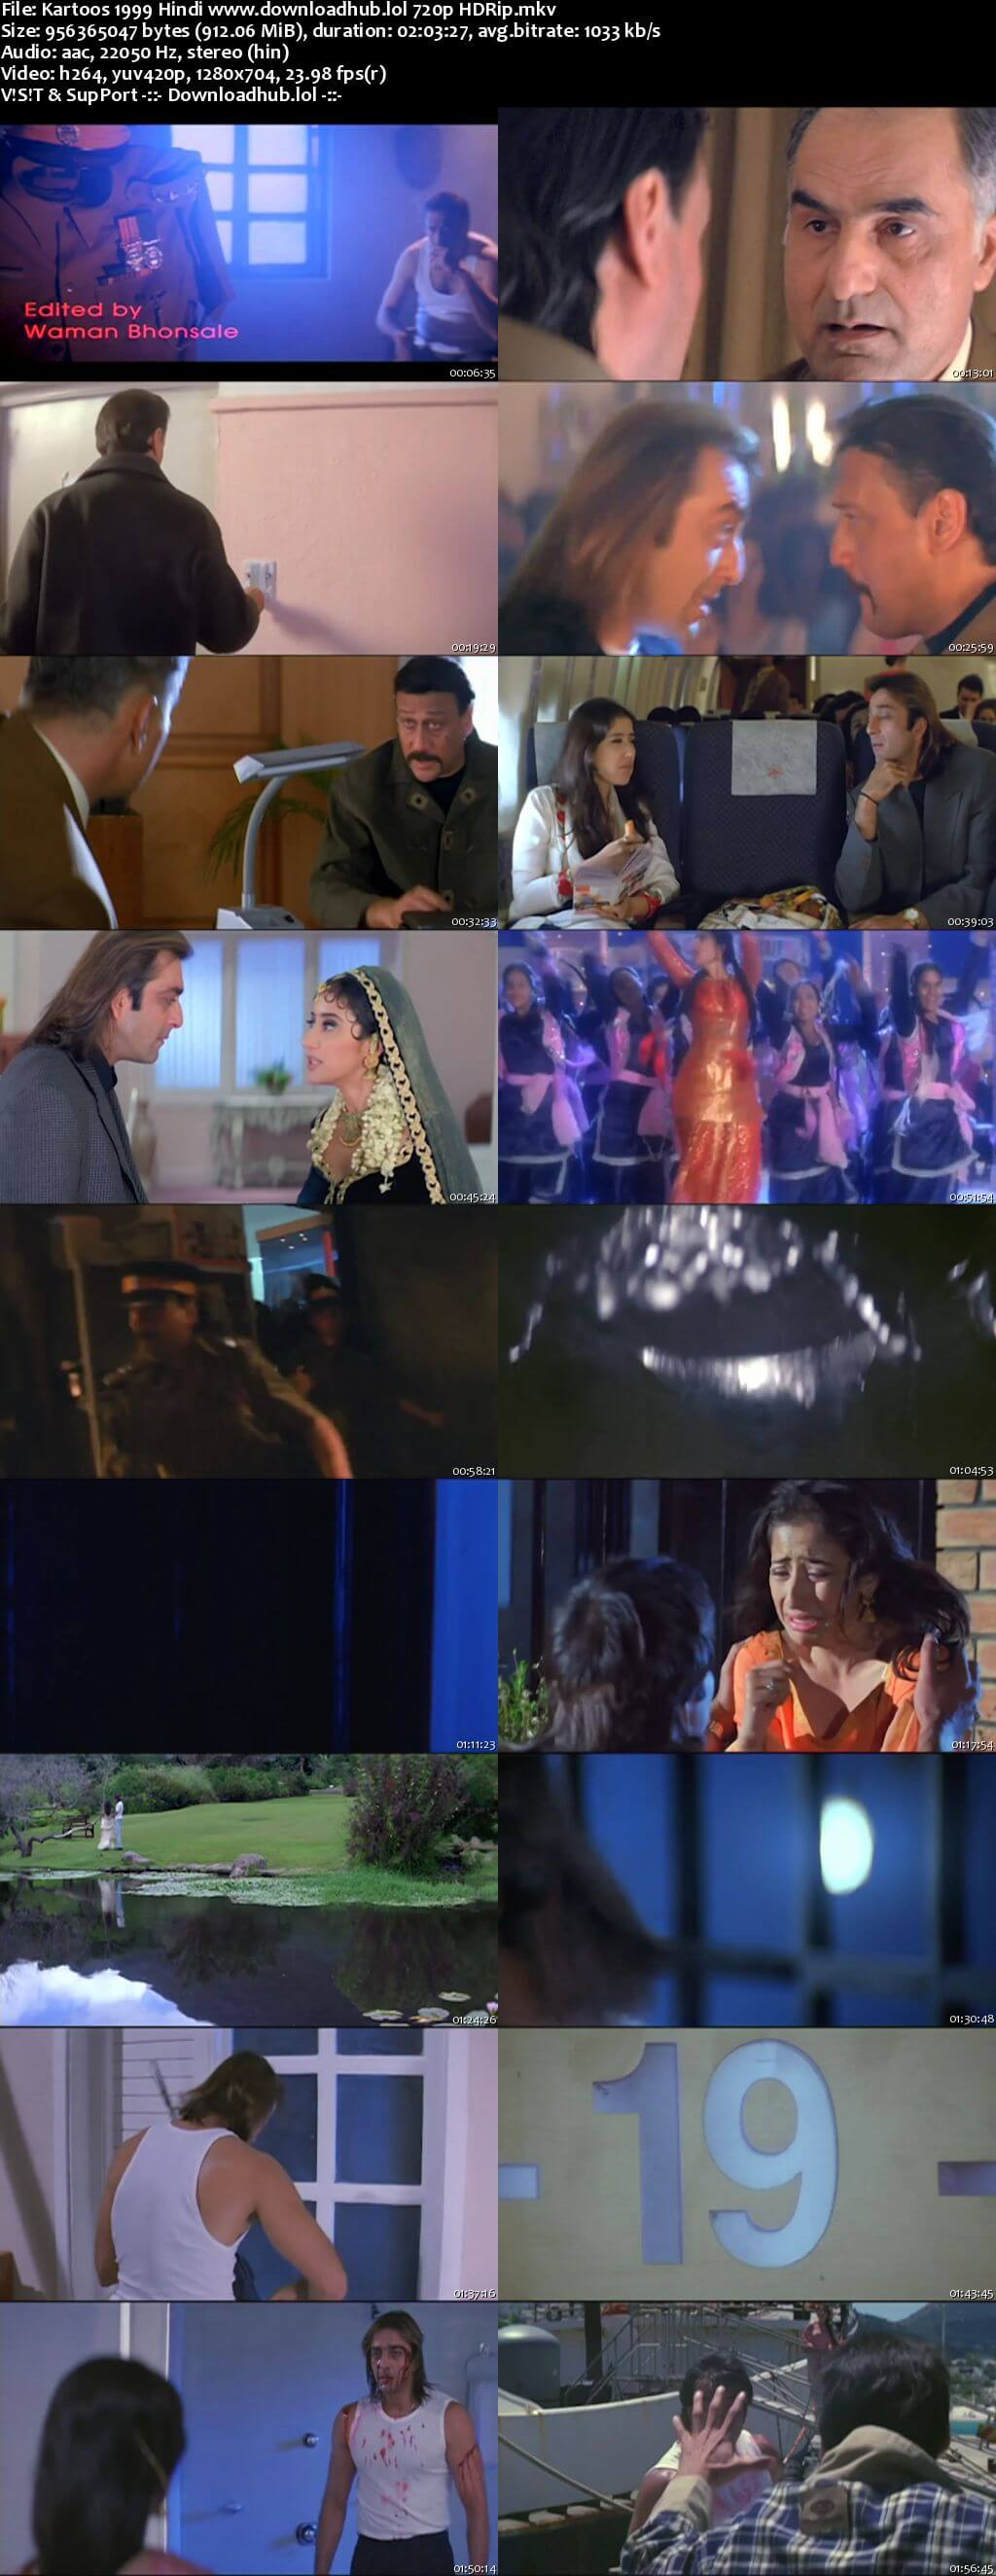 Kartoos 1999 Hindi 720p HDRip x264